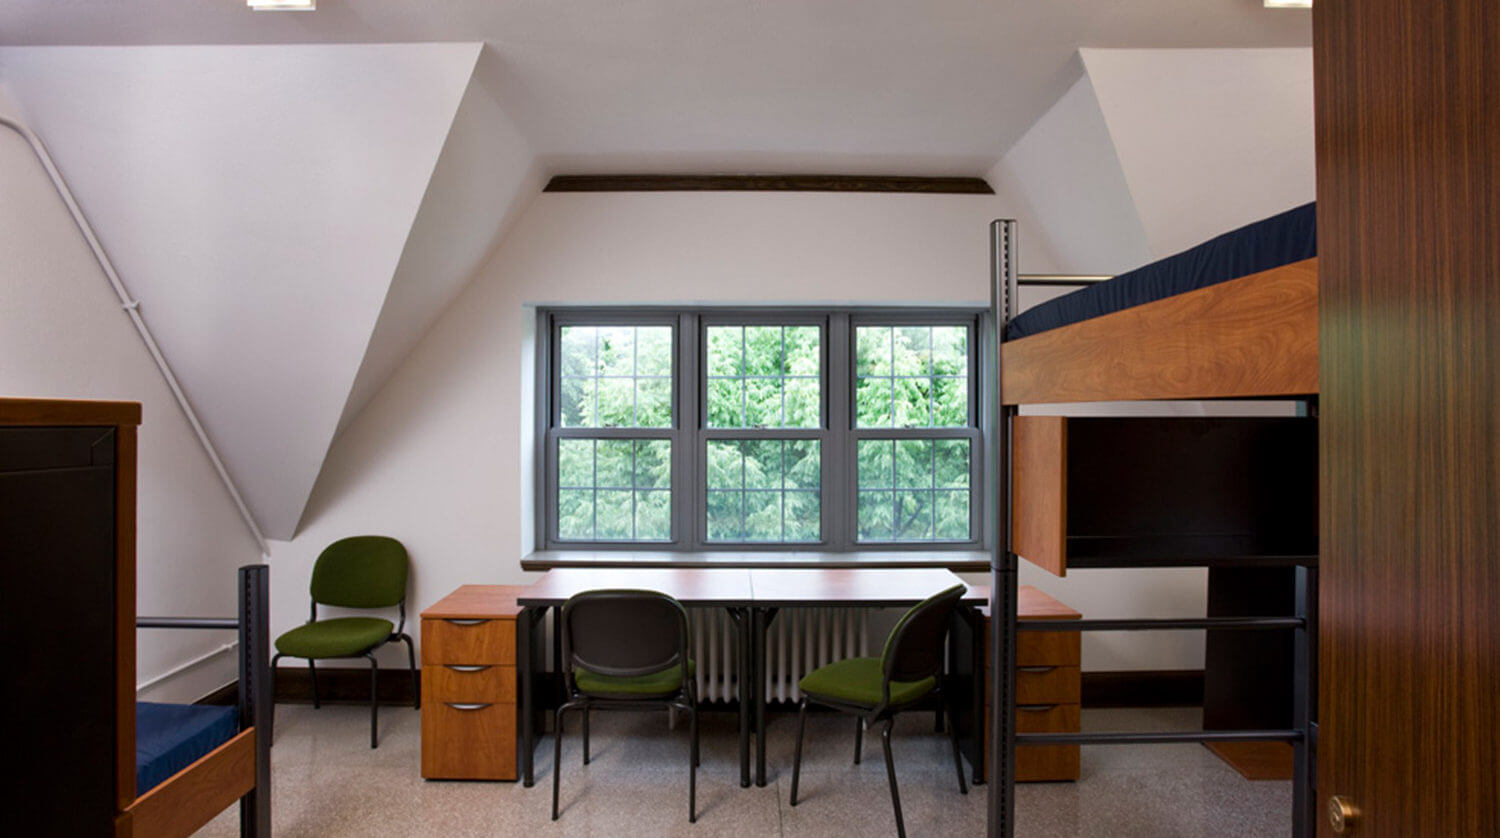 Northwestern University Rogers House Residence Hall dorm room